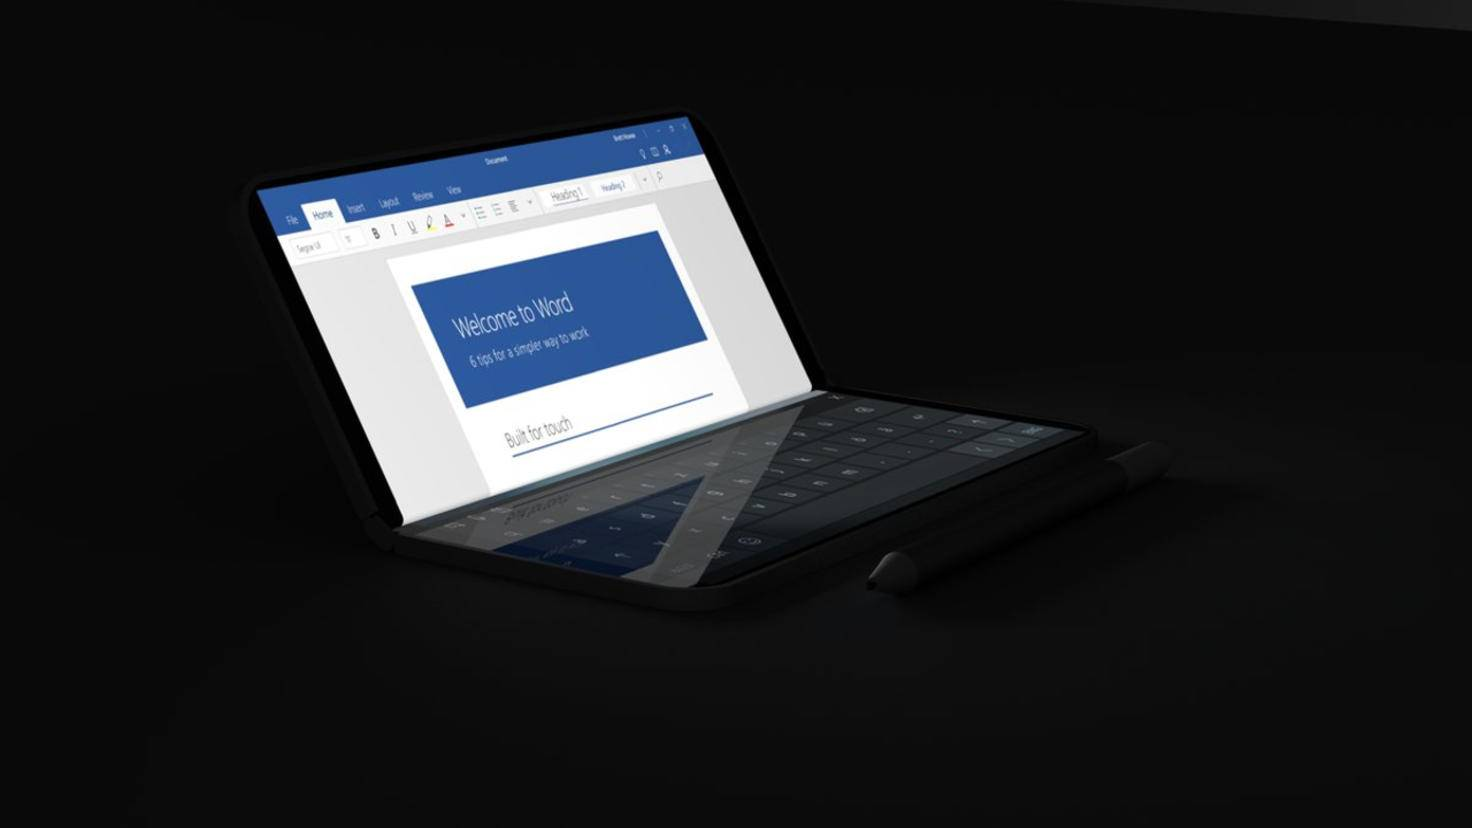 Das Surface Phone im Laptop-Modus.